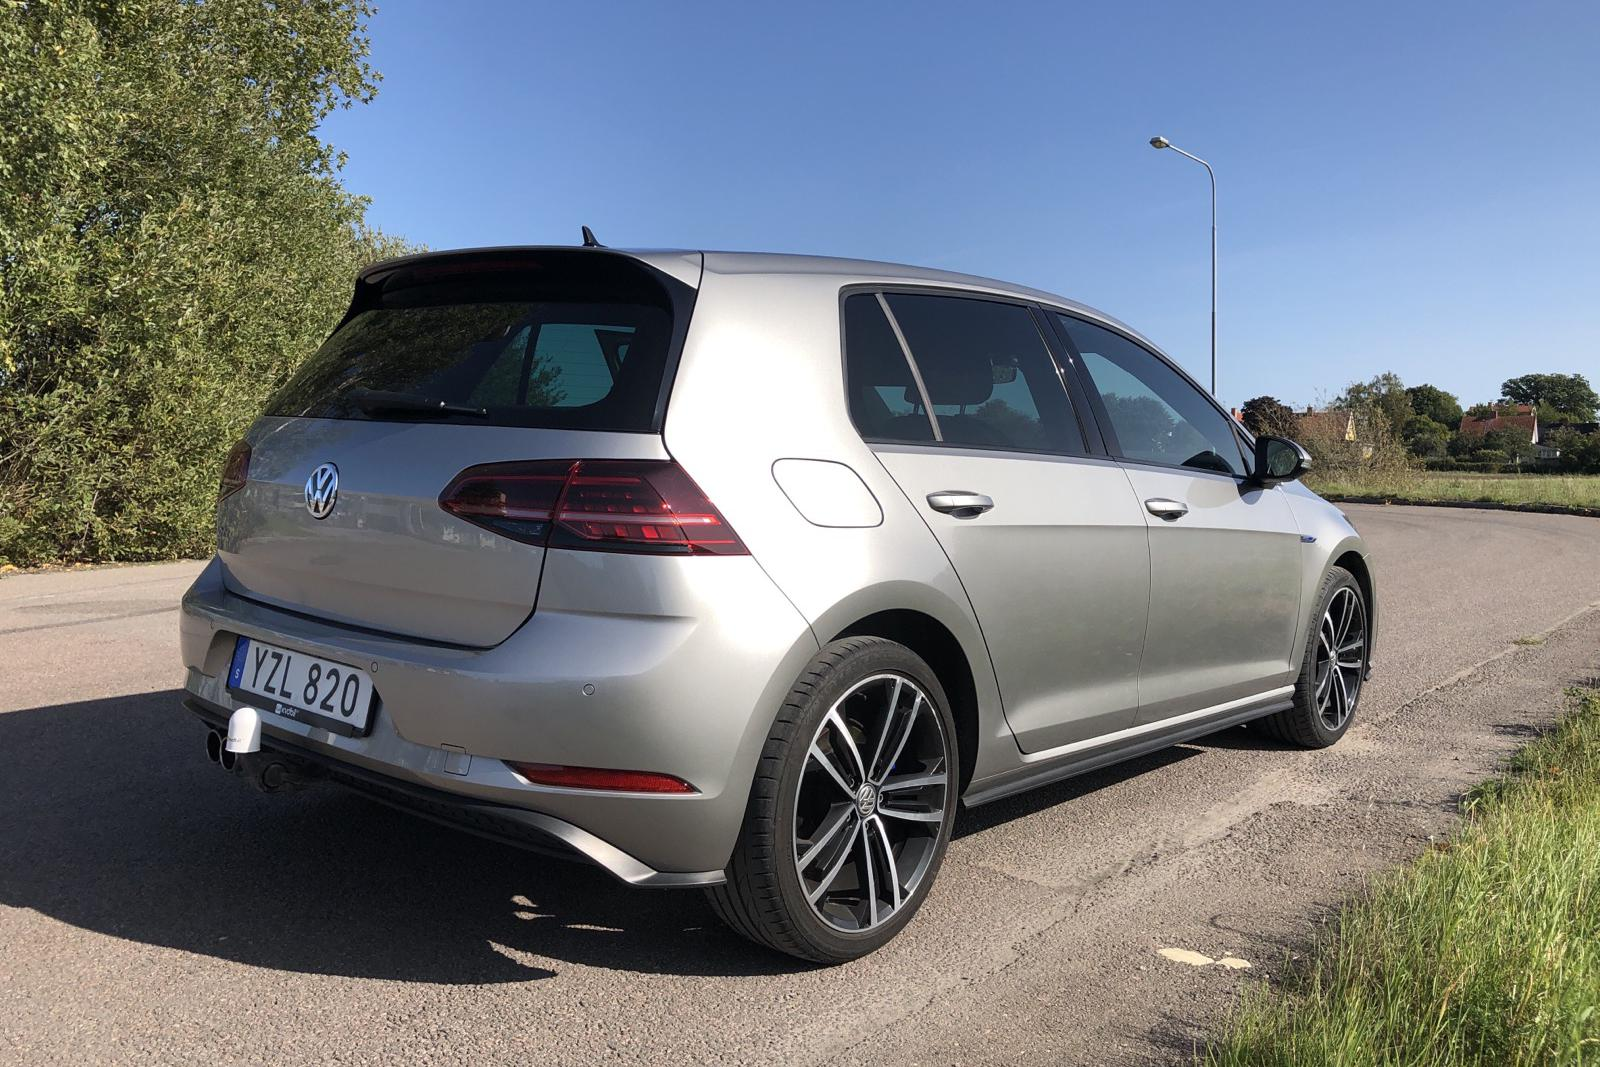 VW Golf VII GTE 5dr (204hk) - 59 700 km - Automatic - silver - 2018